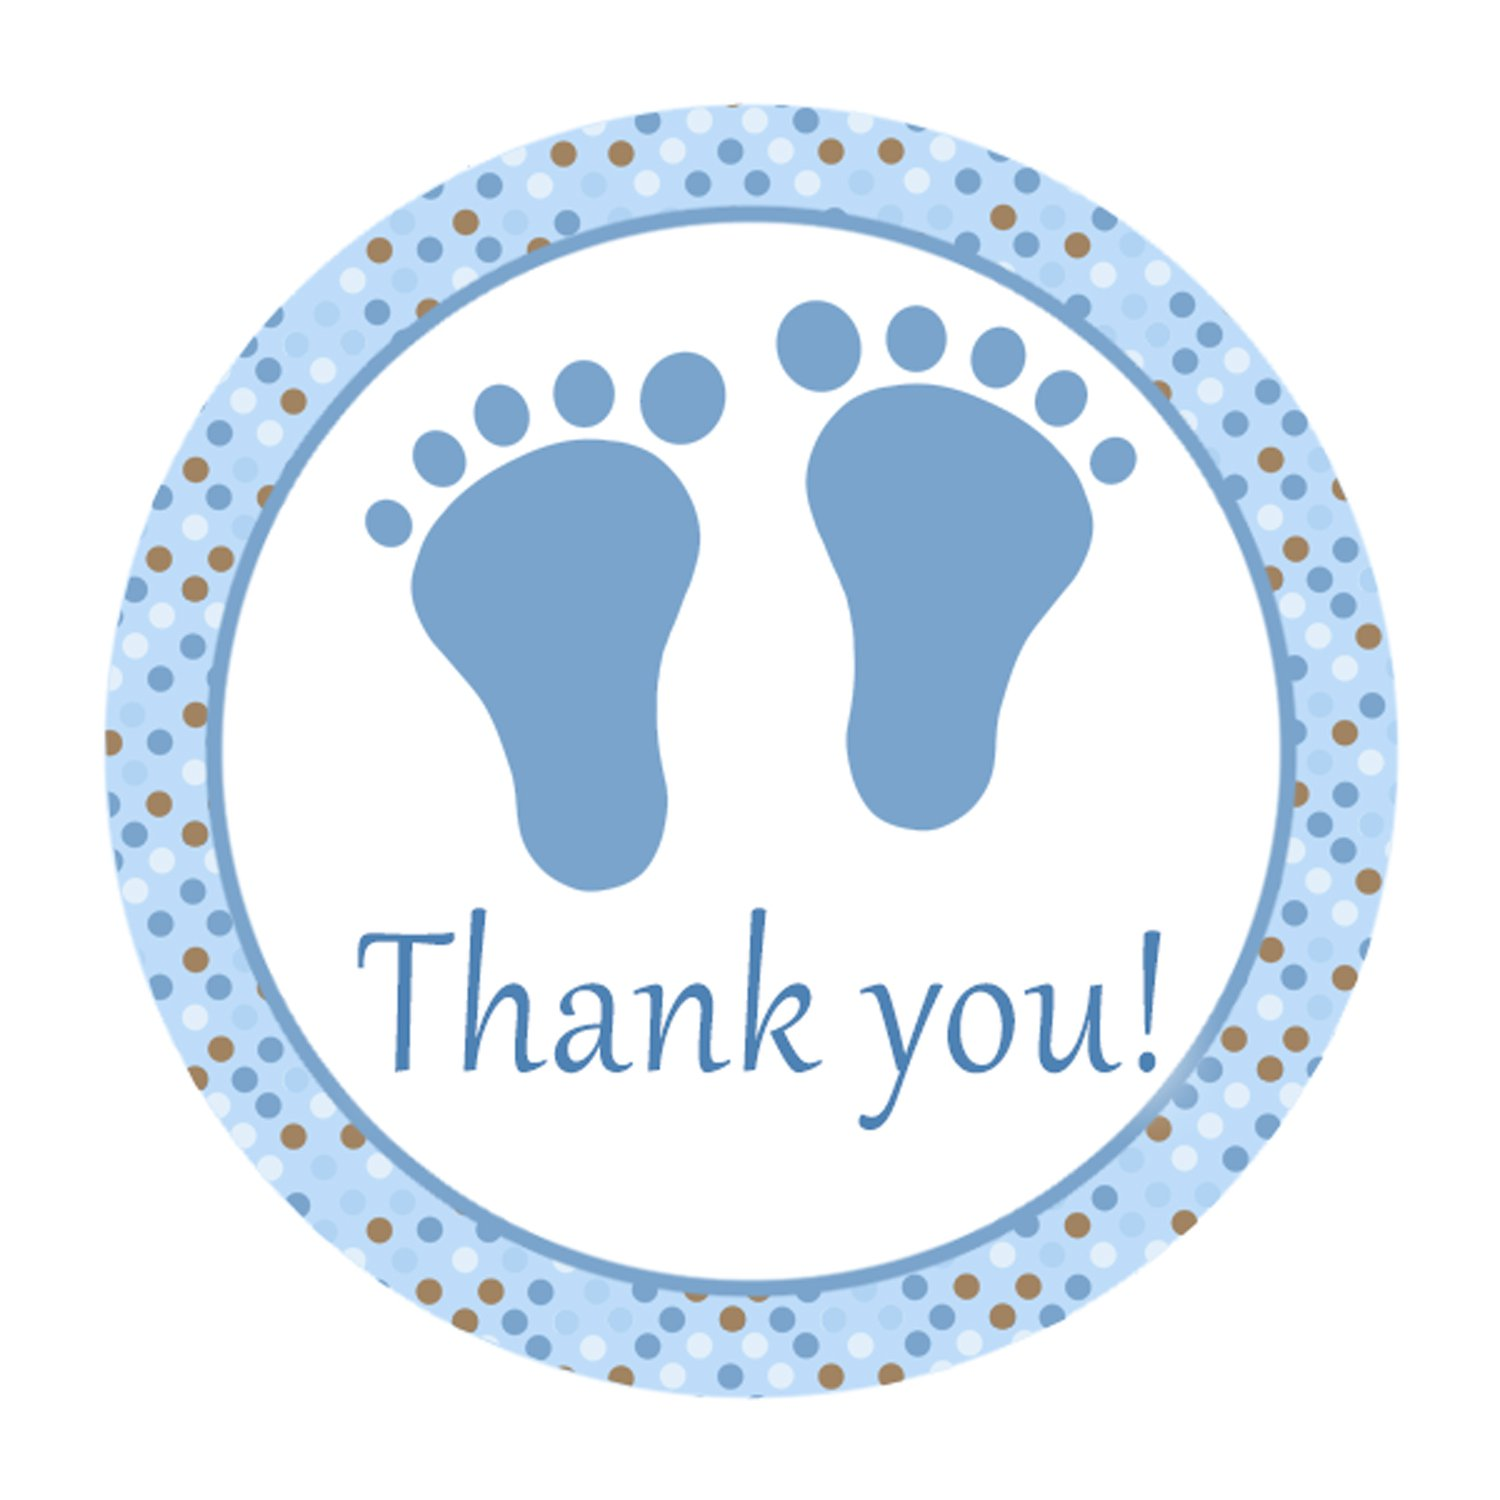 image regarding Free Printable Baby Shower Thank You Tags called Printable Lovable Blue Brown Polka Dots Kid Toes Thank By yourself